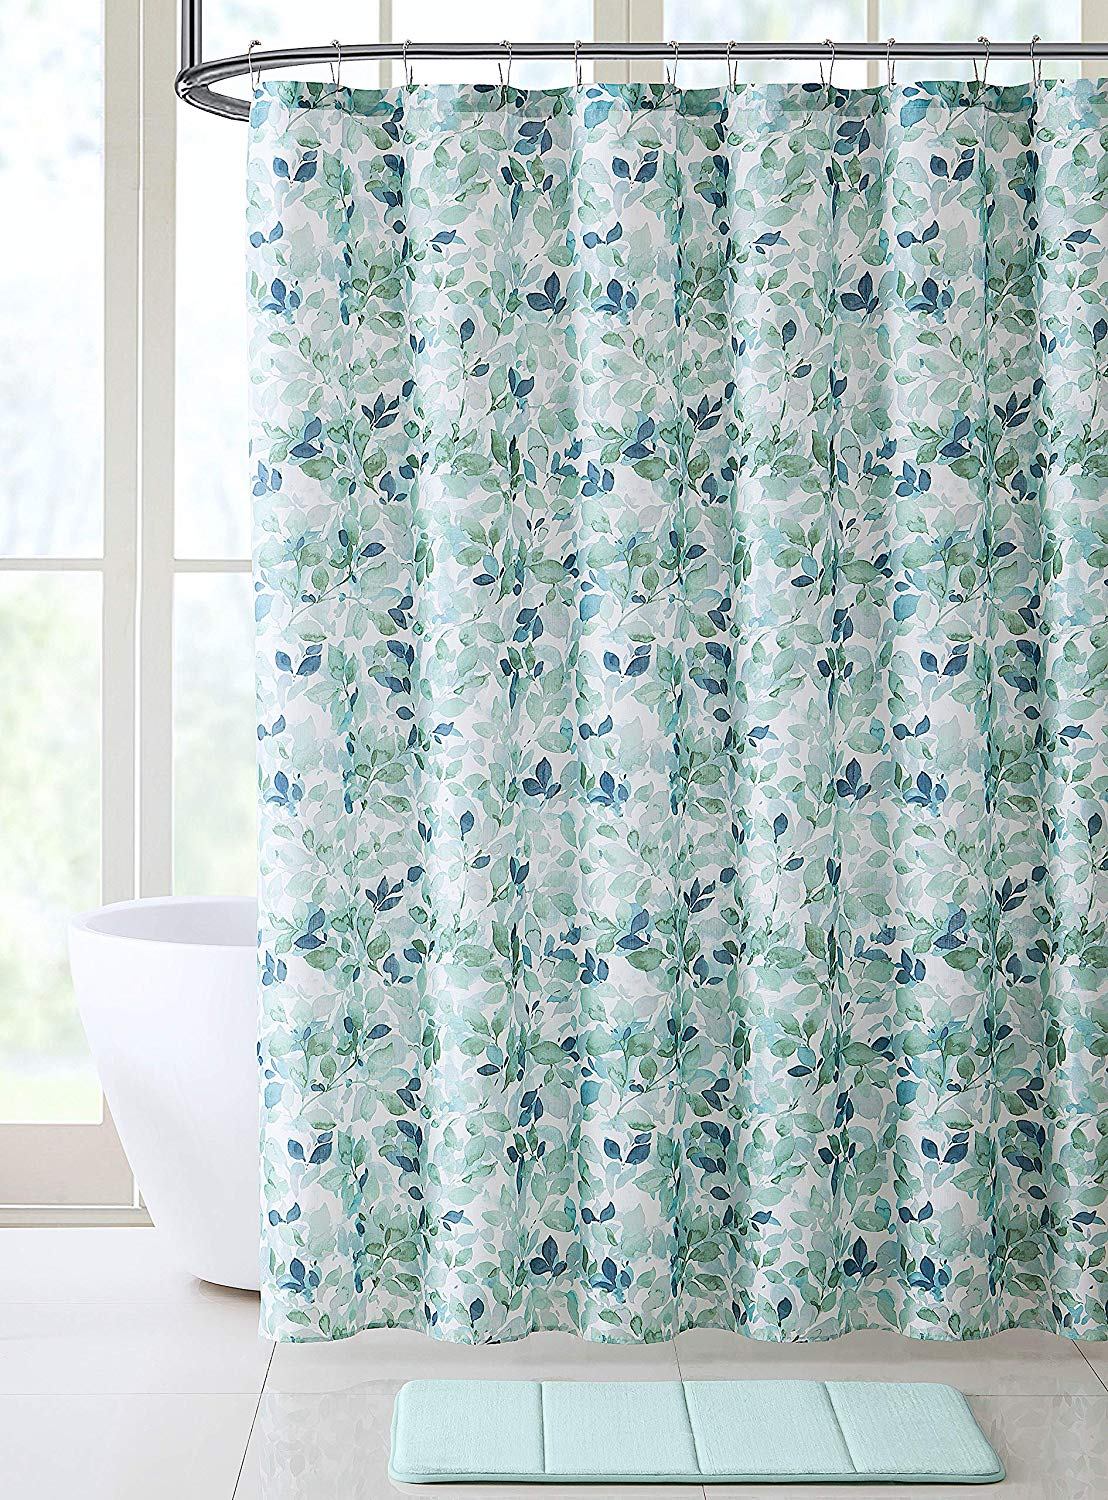 bathroom fabric shower curtain lush nature green blue teal white leaf pattern on faux linen universal bathroom shower curtain for men or women